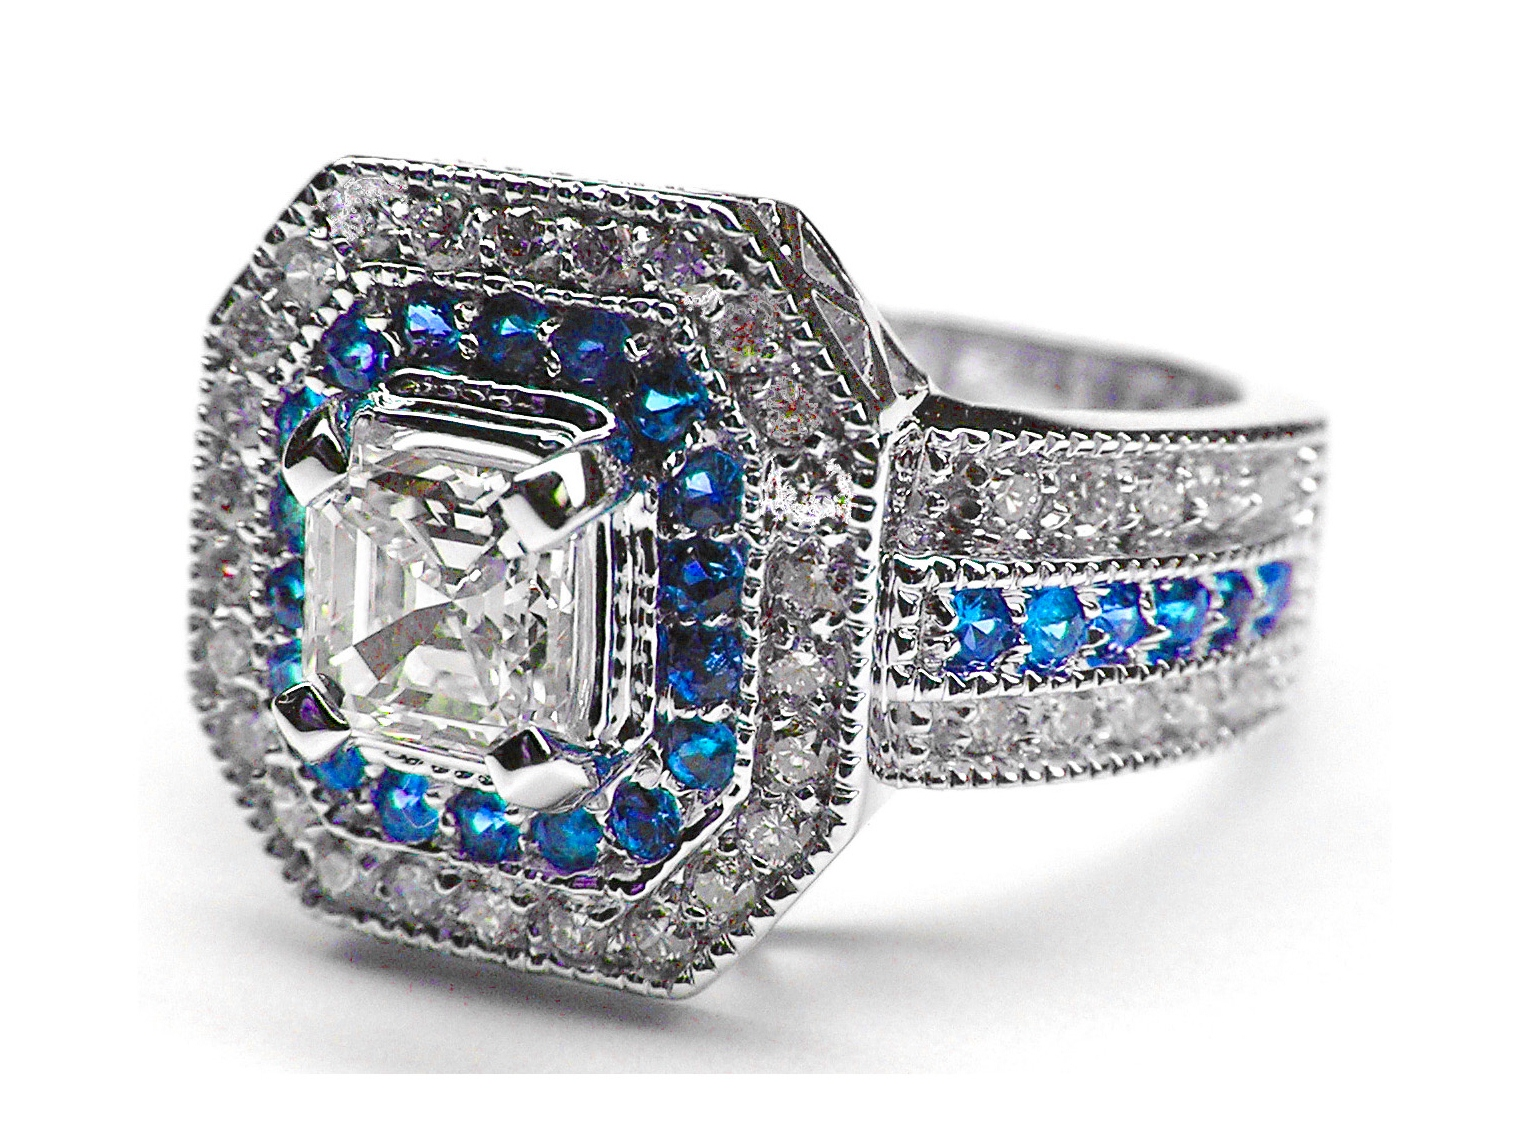 cocktail joancee silver jewelry engagement sterling ring asscher sapphire cut